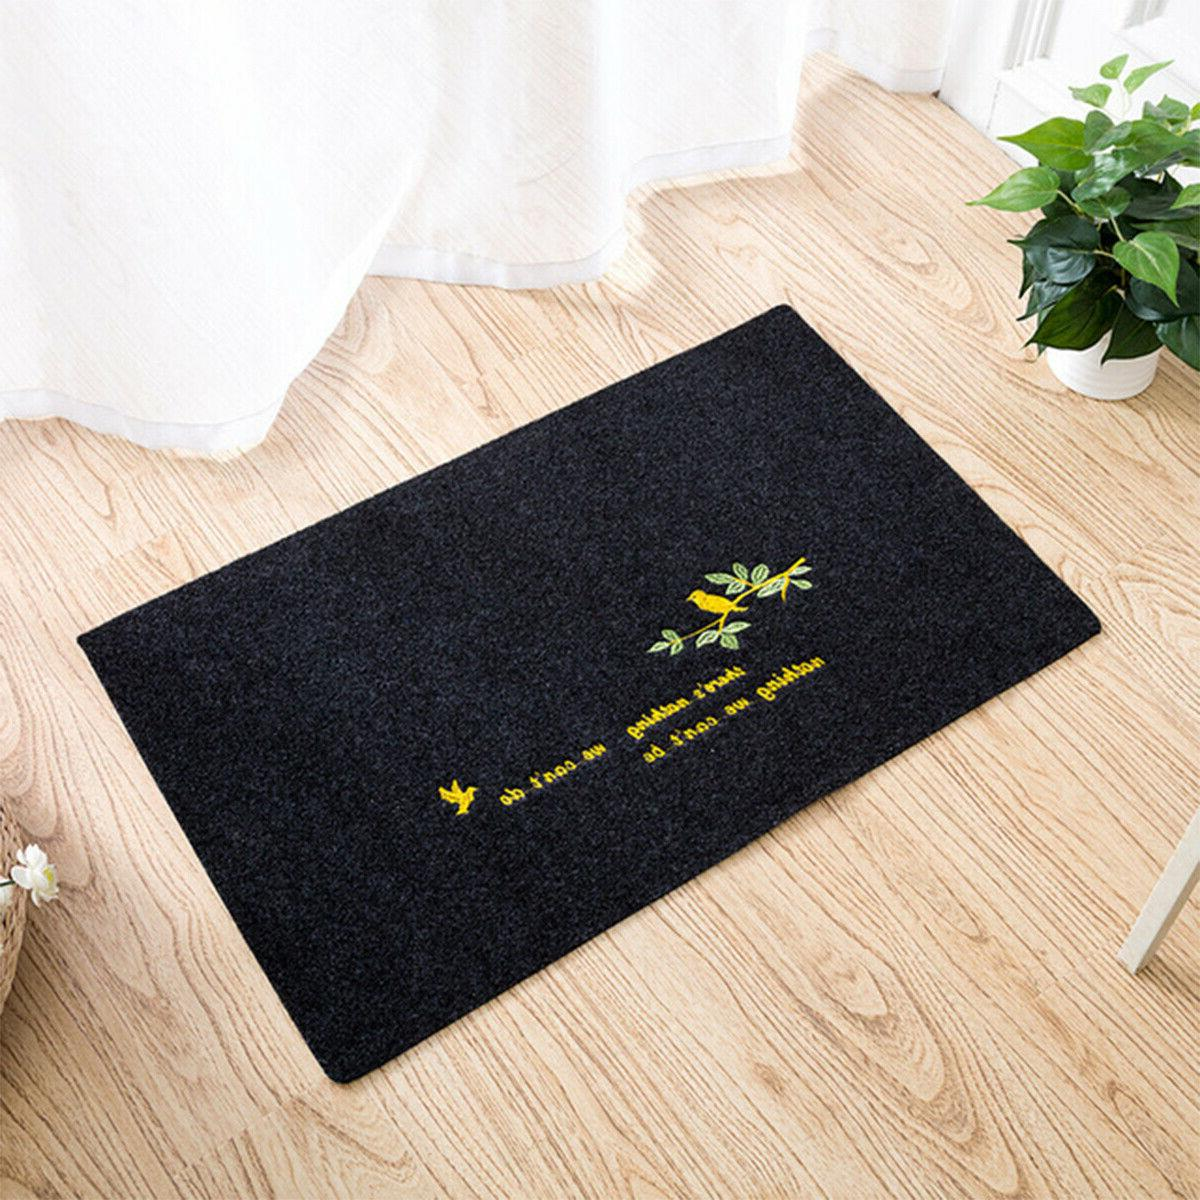 Waterproof Carpet Non Door Entrance Floor Rug